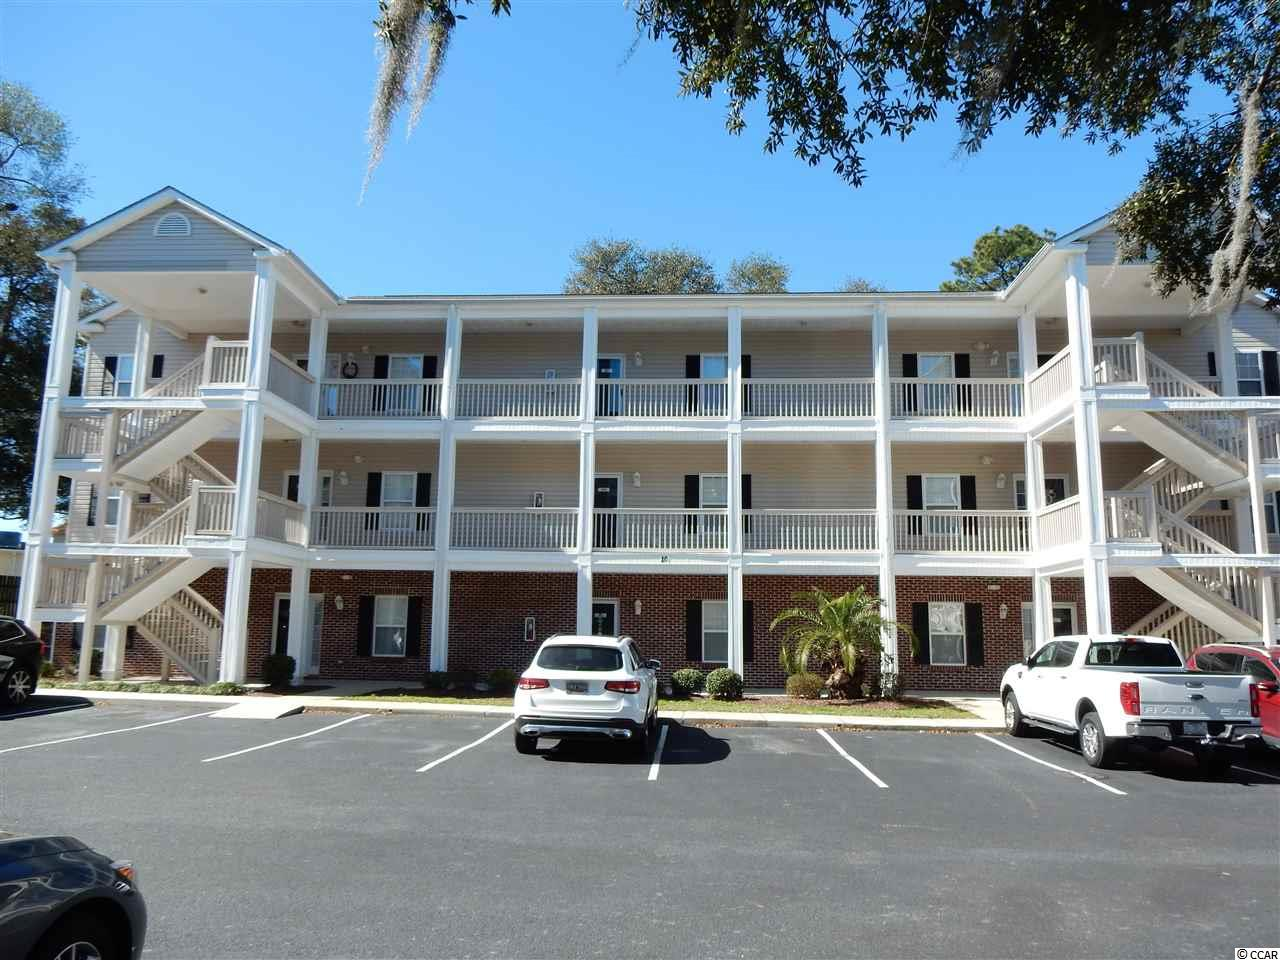 Spacious 3 bedroom 2 bath unit with lots of closet space.Top floor corner unit. Beautifully decorated & furnished - in excellent condition. Large oversized screened in back deck.Only a  golf cart ride to the beach & shopping.